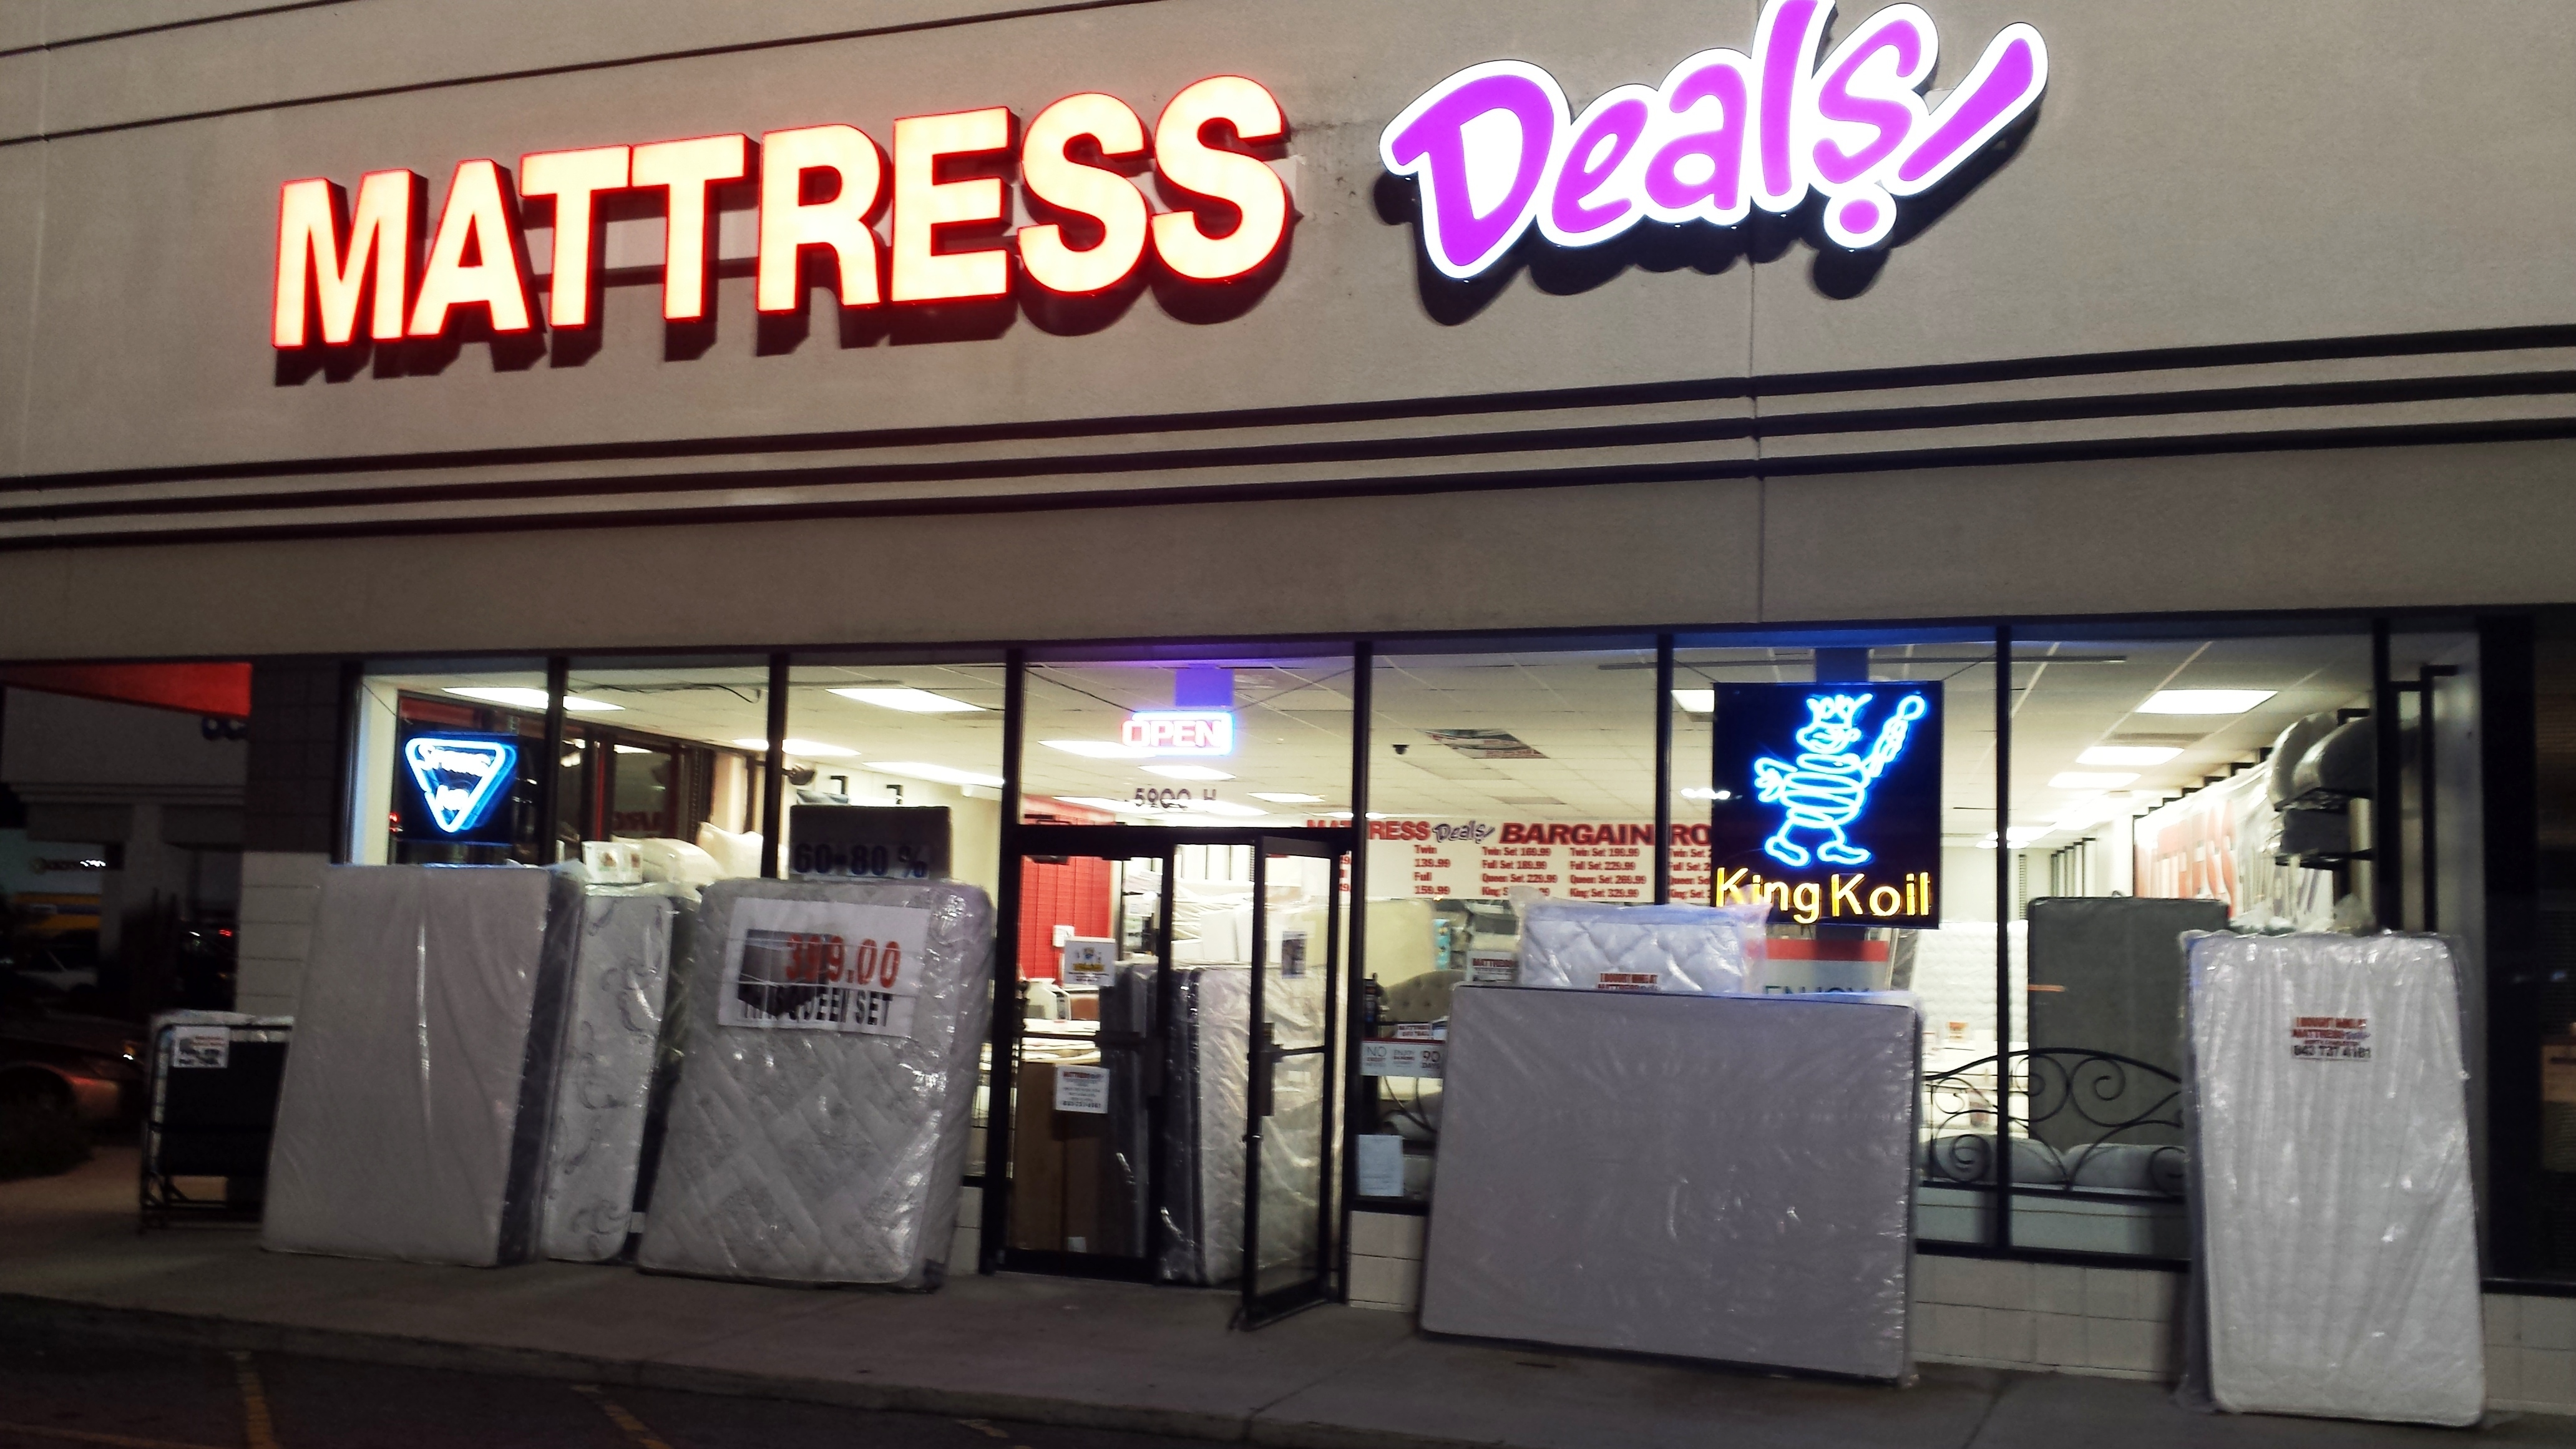 Mattress Deals image 17